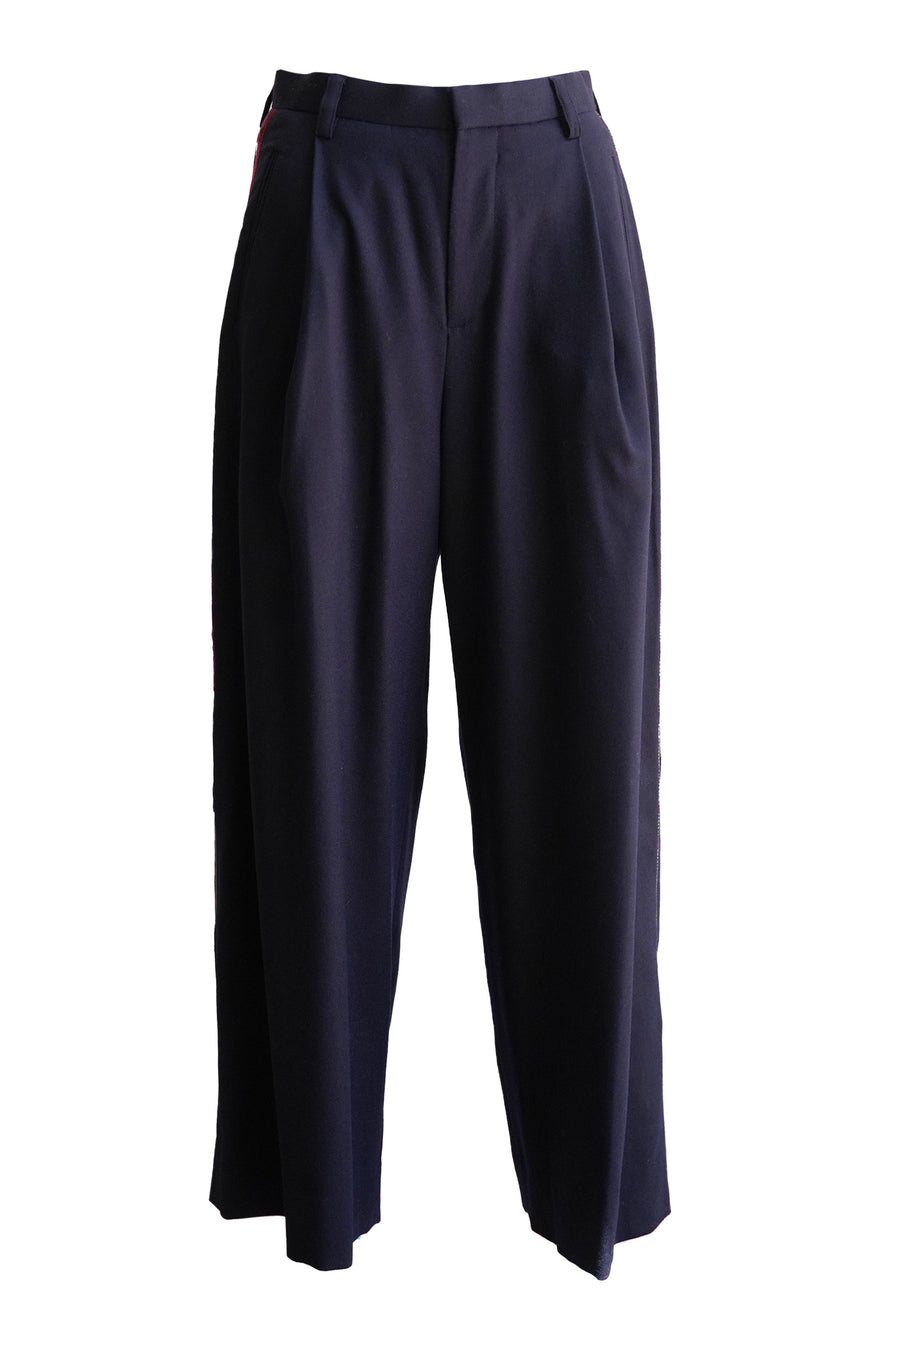 Wool Embellished Chain Pant in Navy Blue